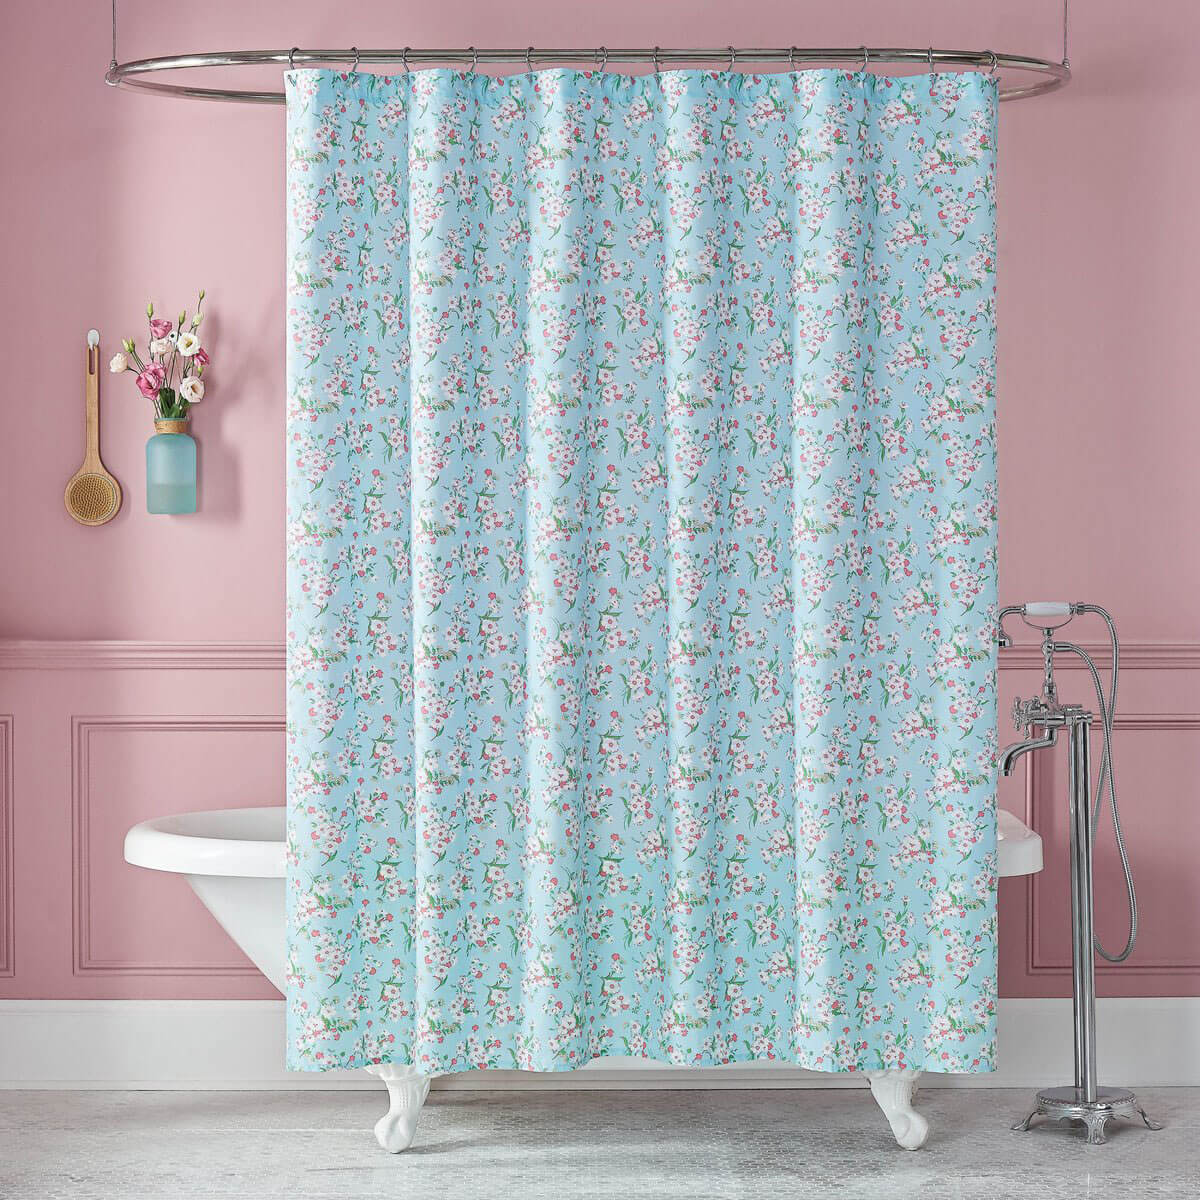 The Lady Pepperell Brigitte Shower Curtain